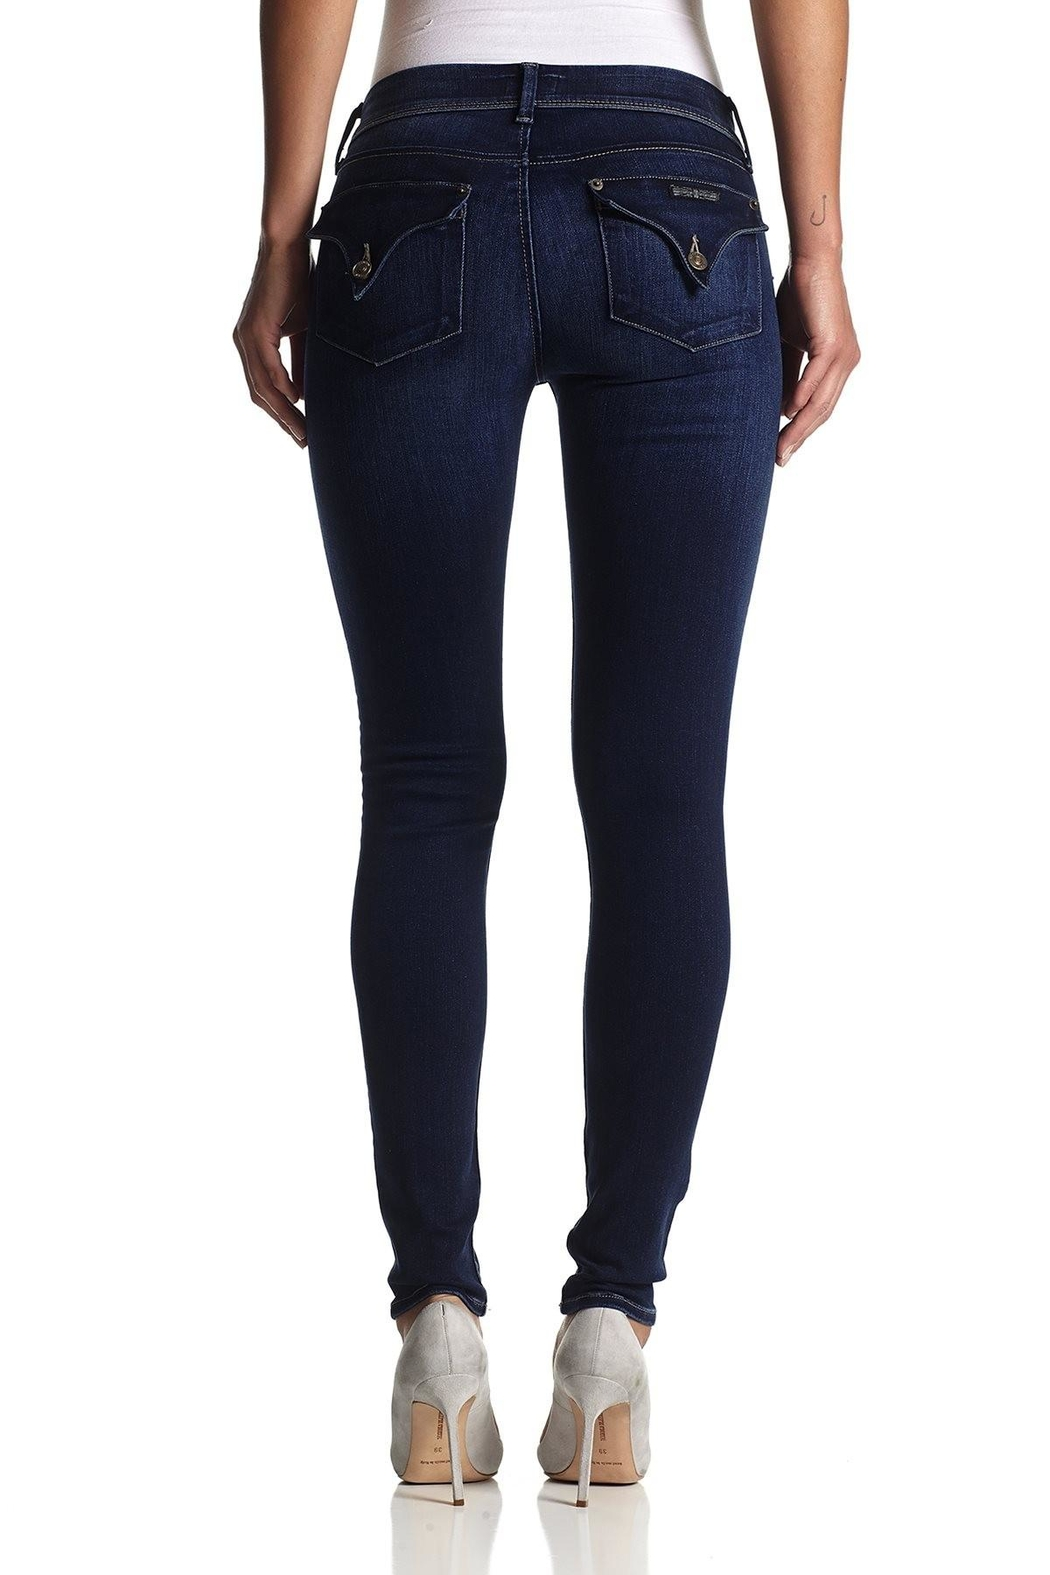 Hudson Jeans Collin Skinny Jeans - Side Cropped Image